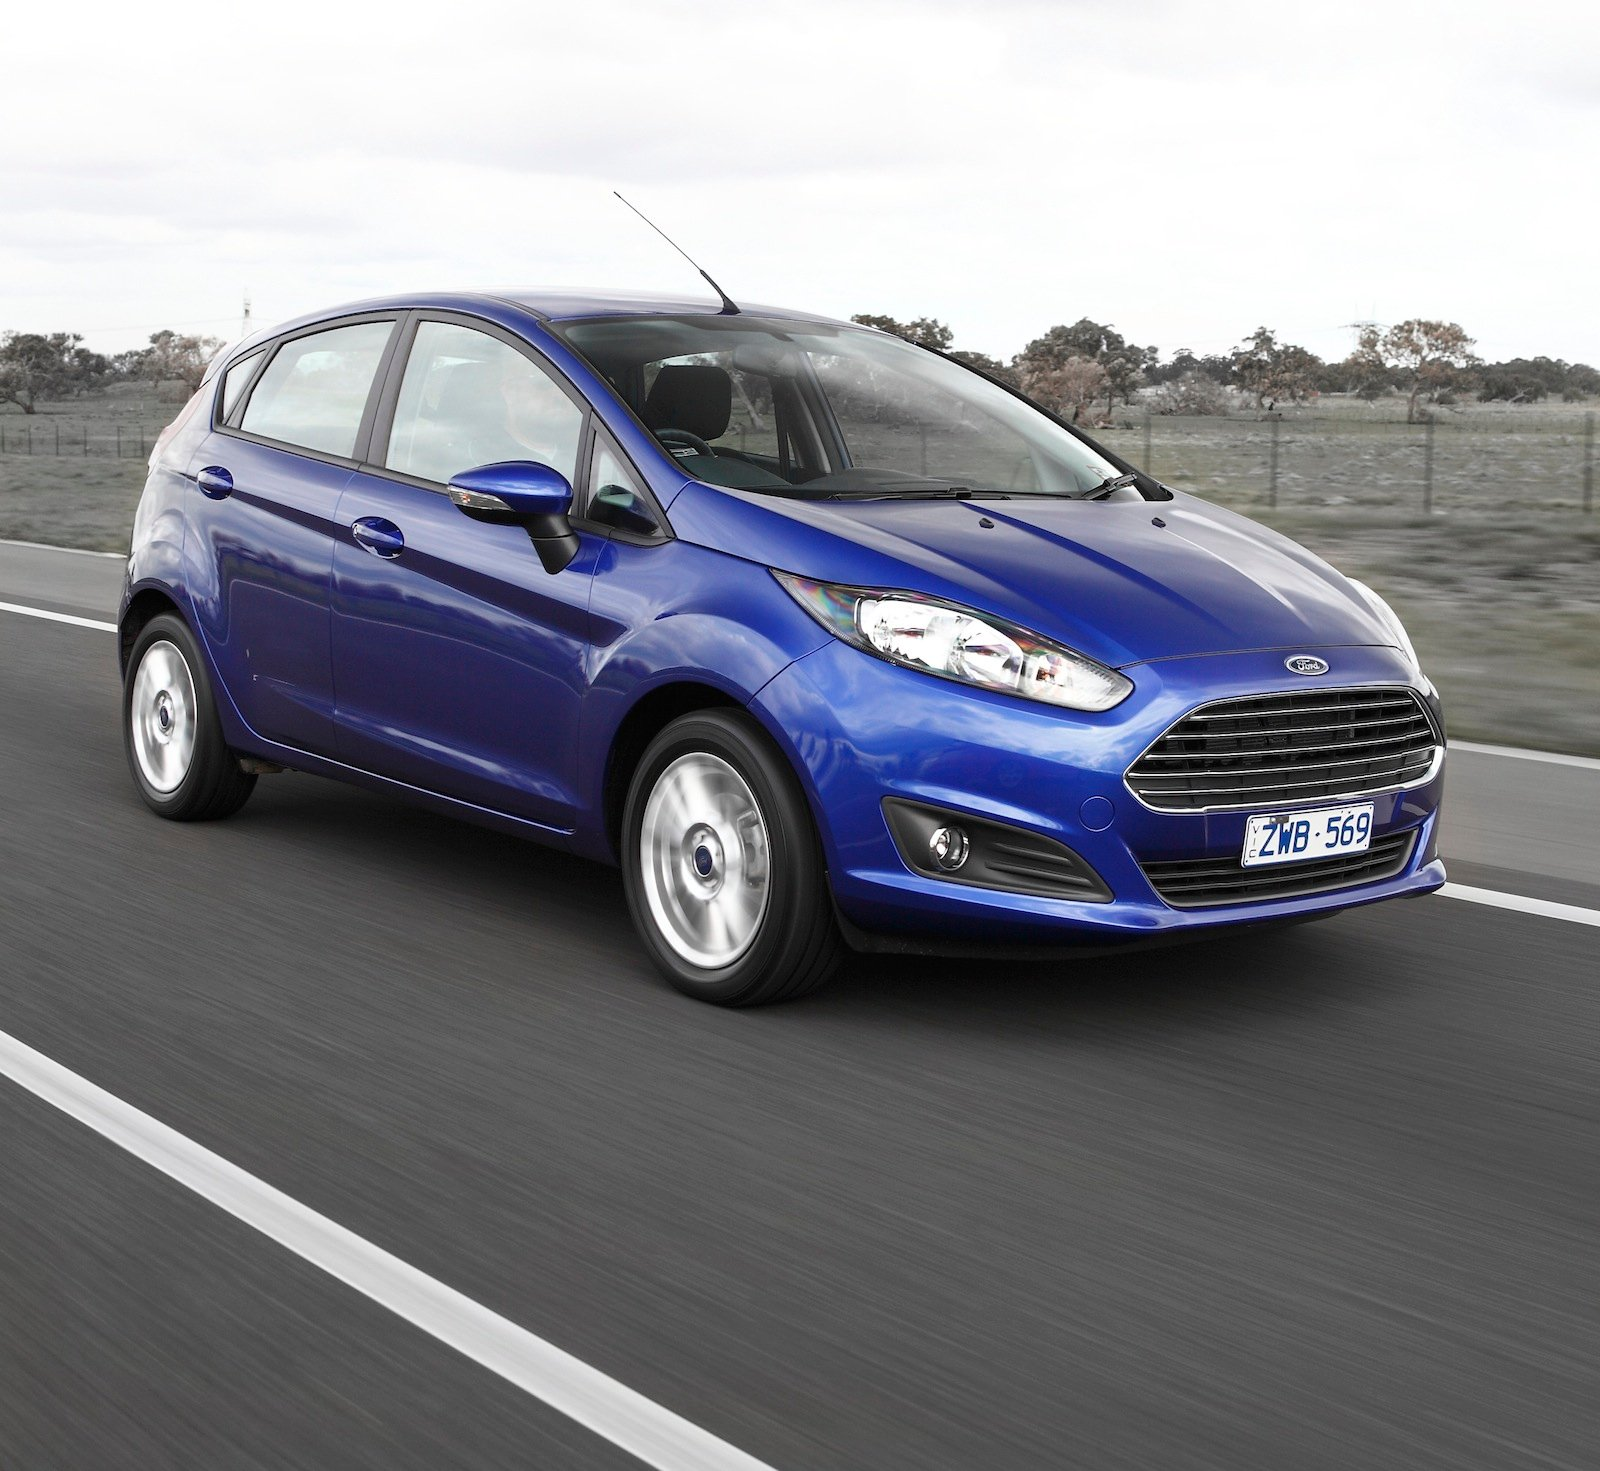 2013 Ford Fiesta: 2013 Ford Fiesta Review